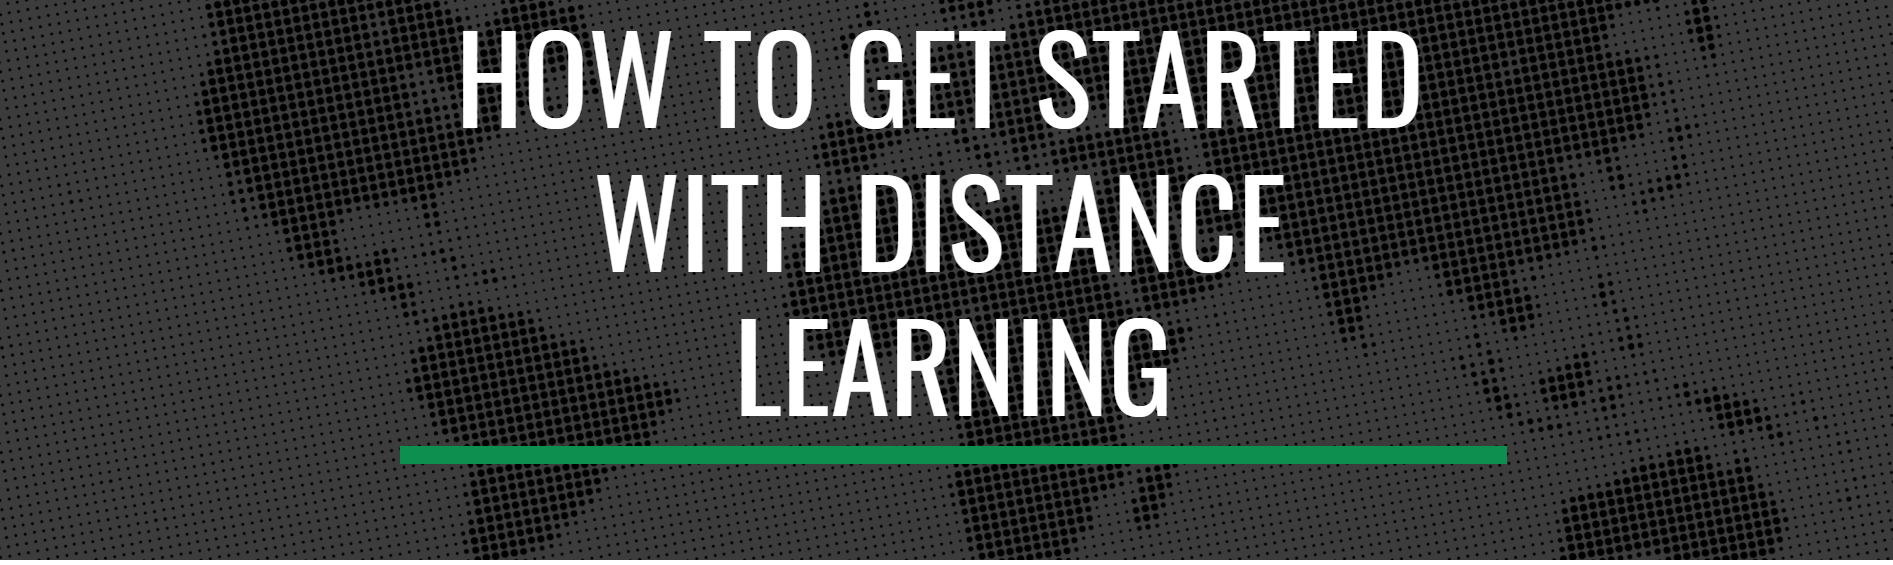 How to start distance learning